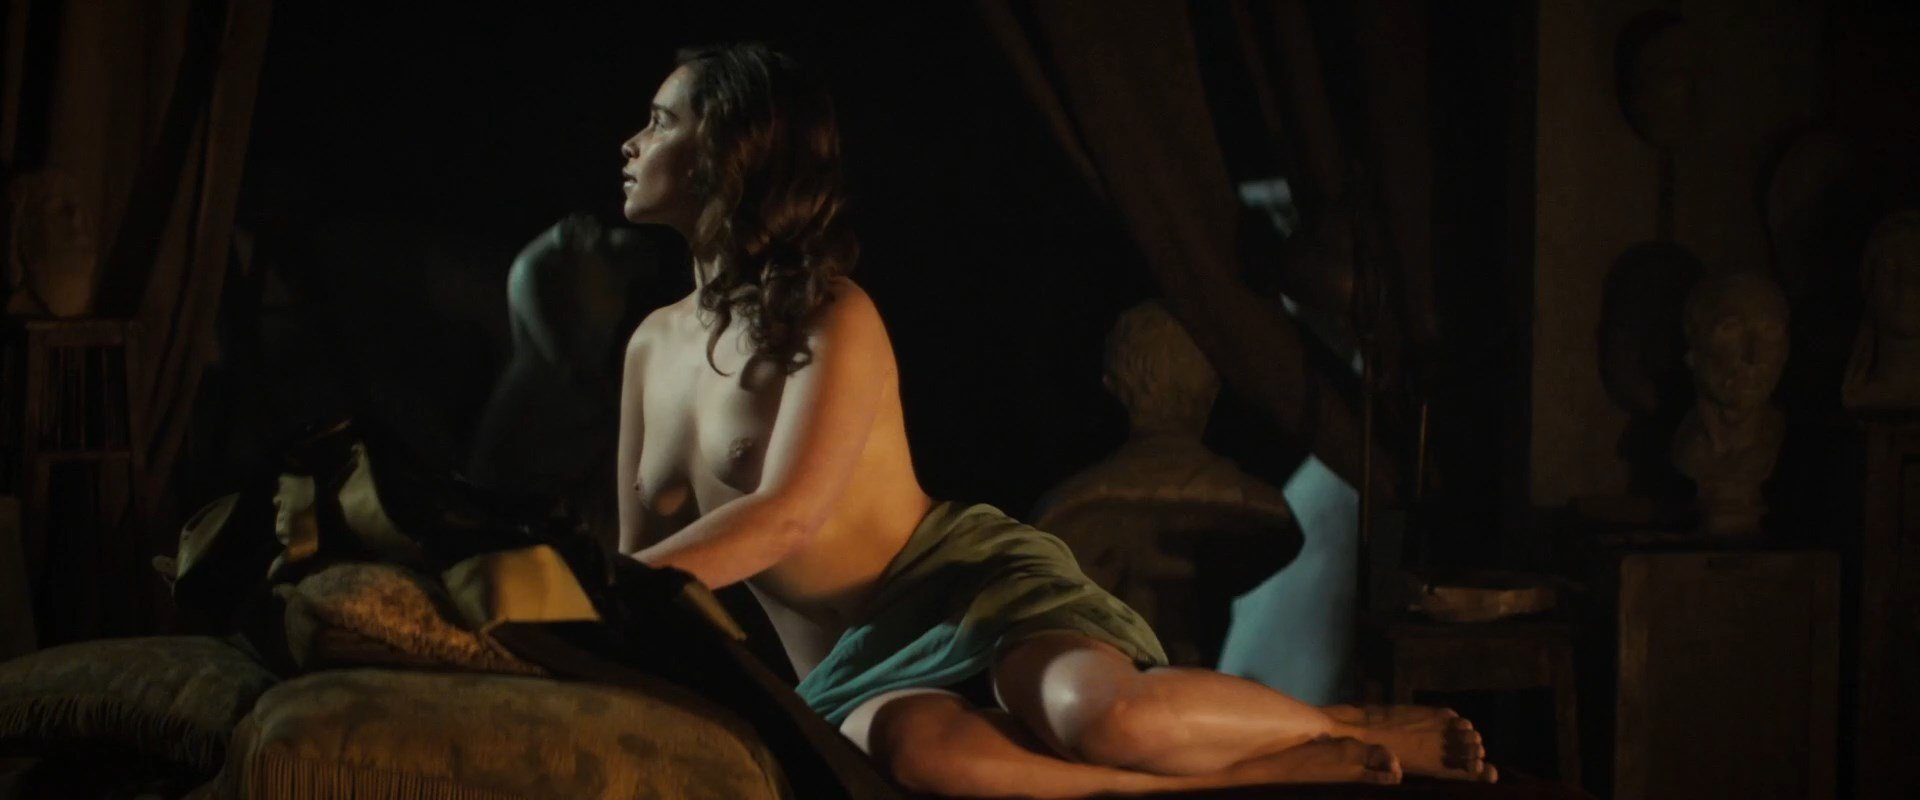 image Emilia clarke nude voice from the stone 2017